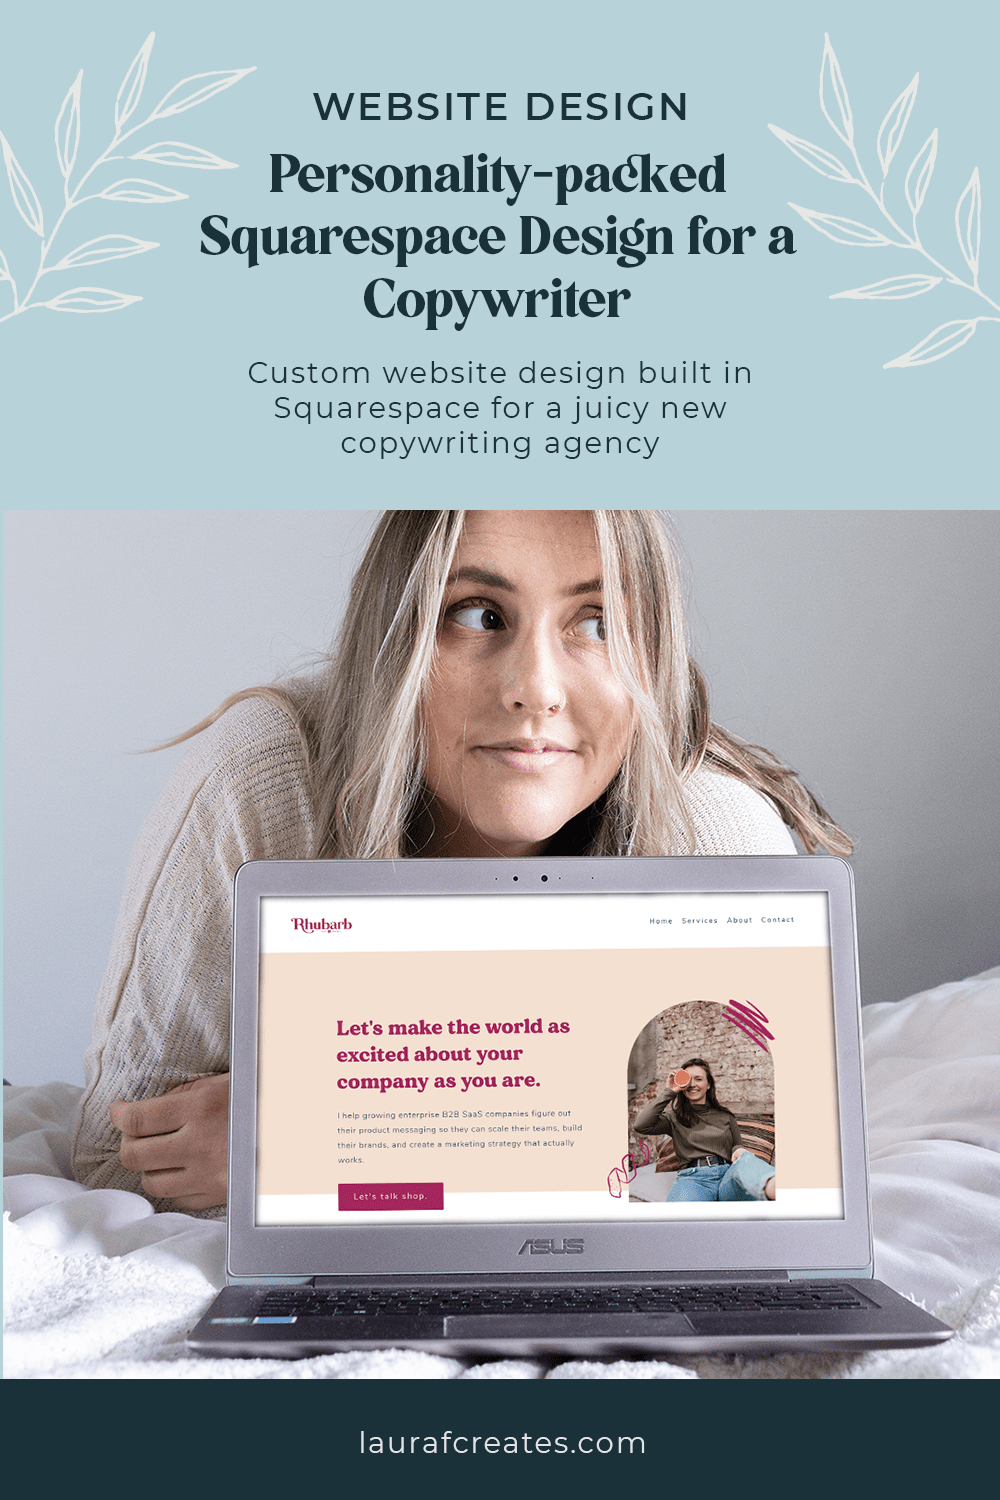 Personality-packed Squarespace Design for a Copywriter